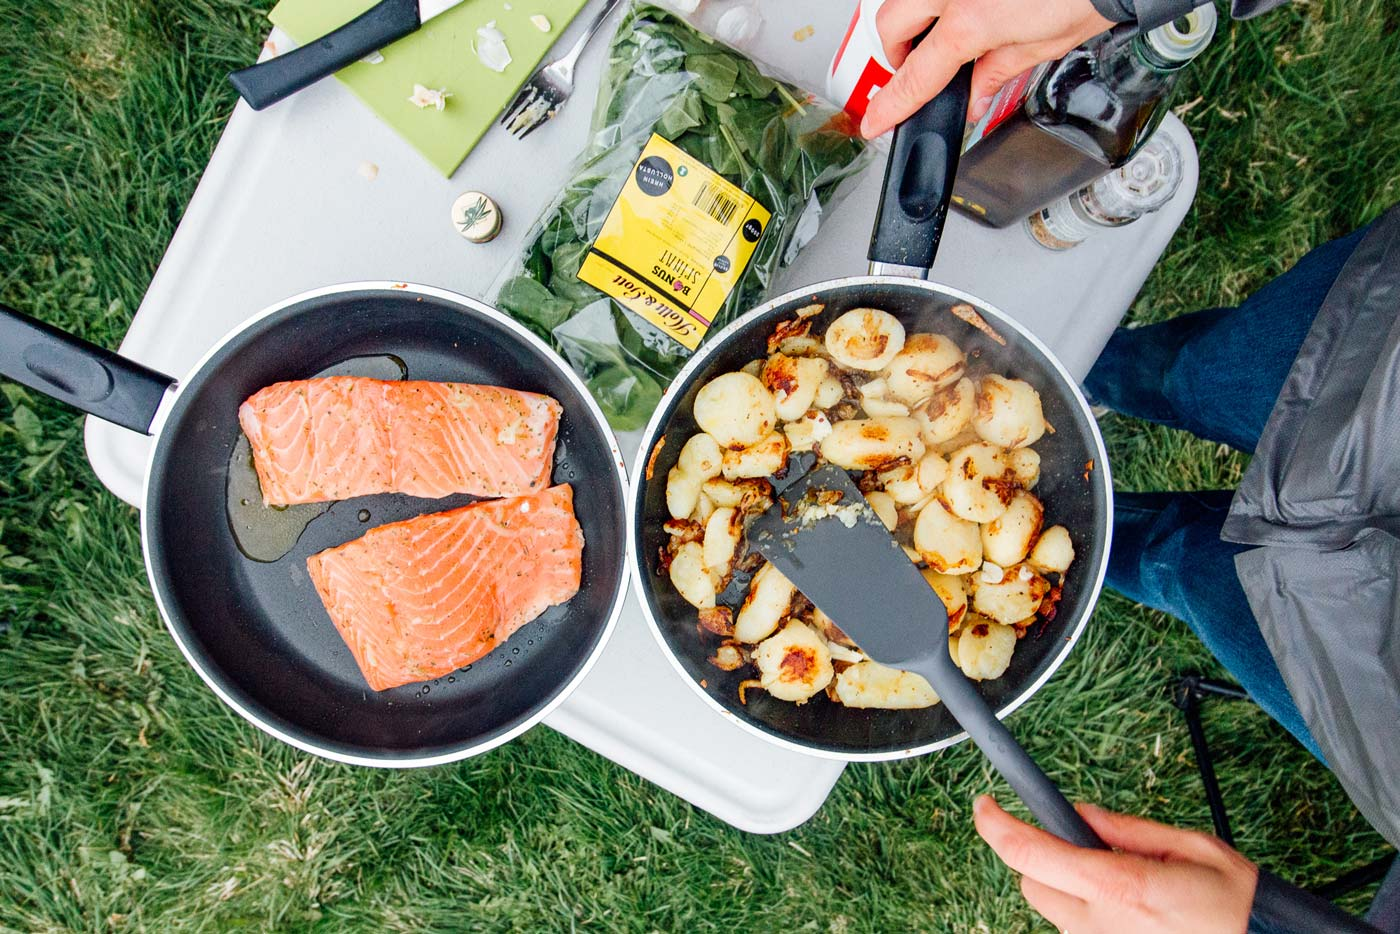 Overhead view of two skillets containing potatoes and salmon on a camping table